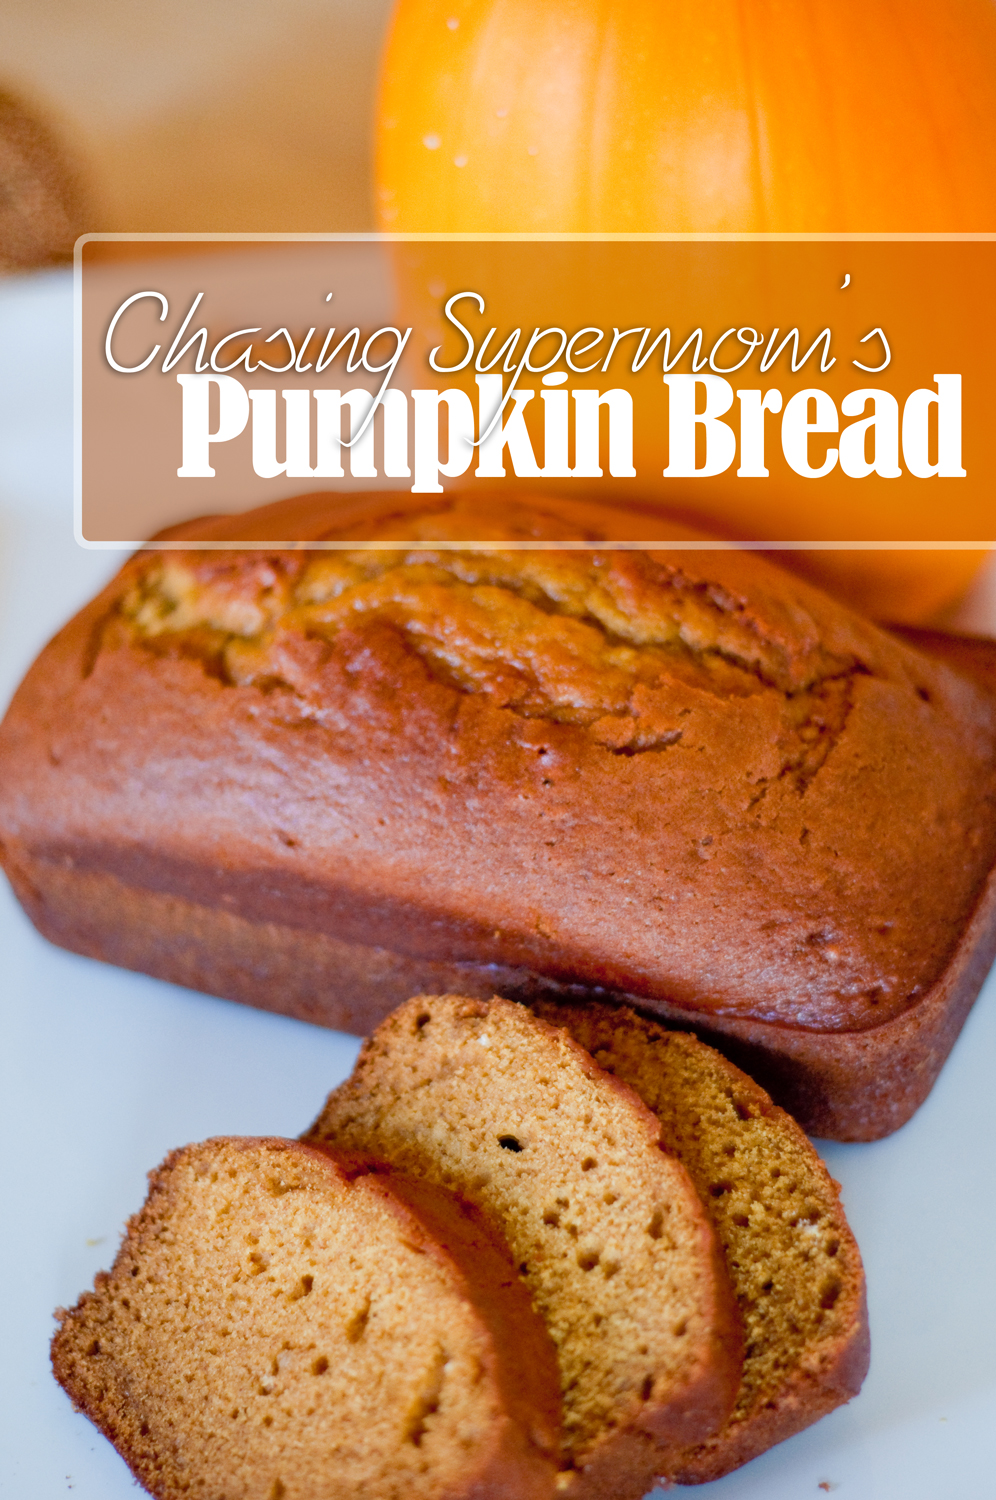 Chasing Supermom's Pumpkin Bread